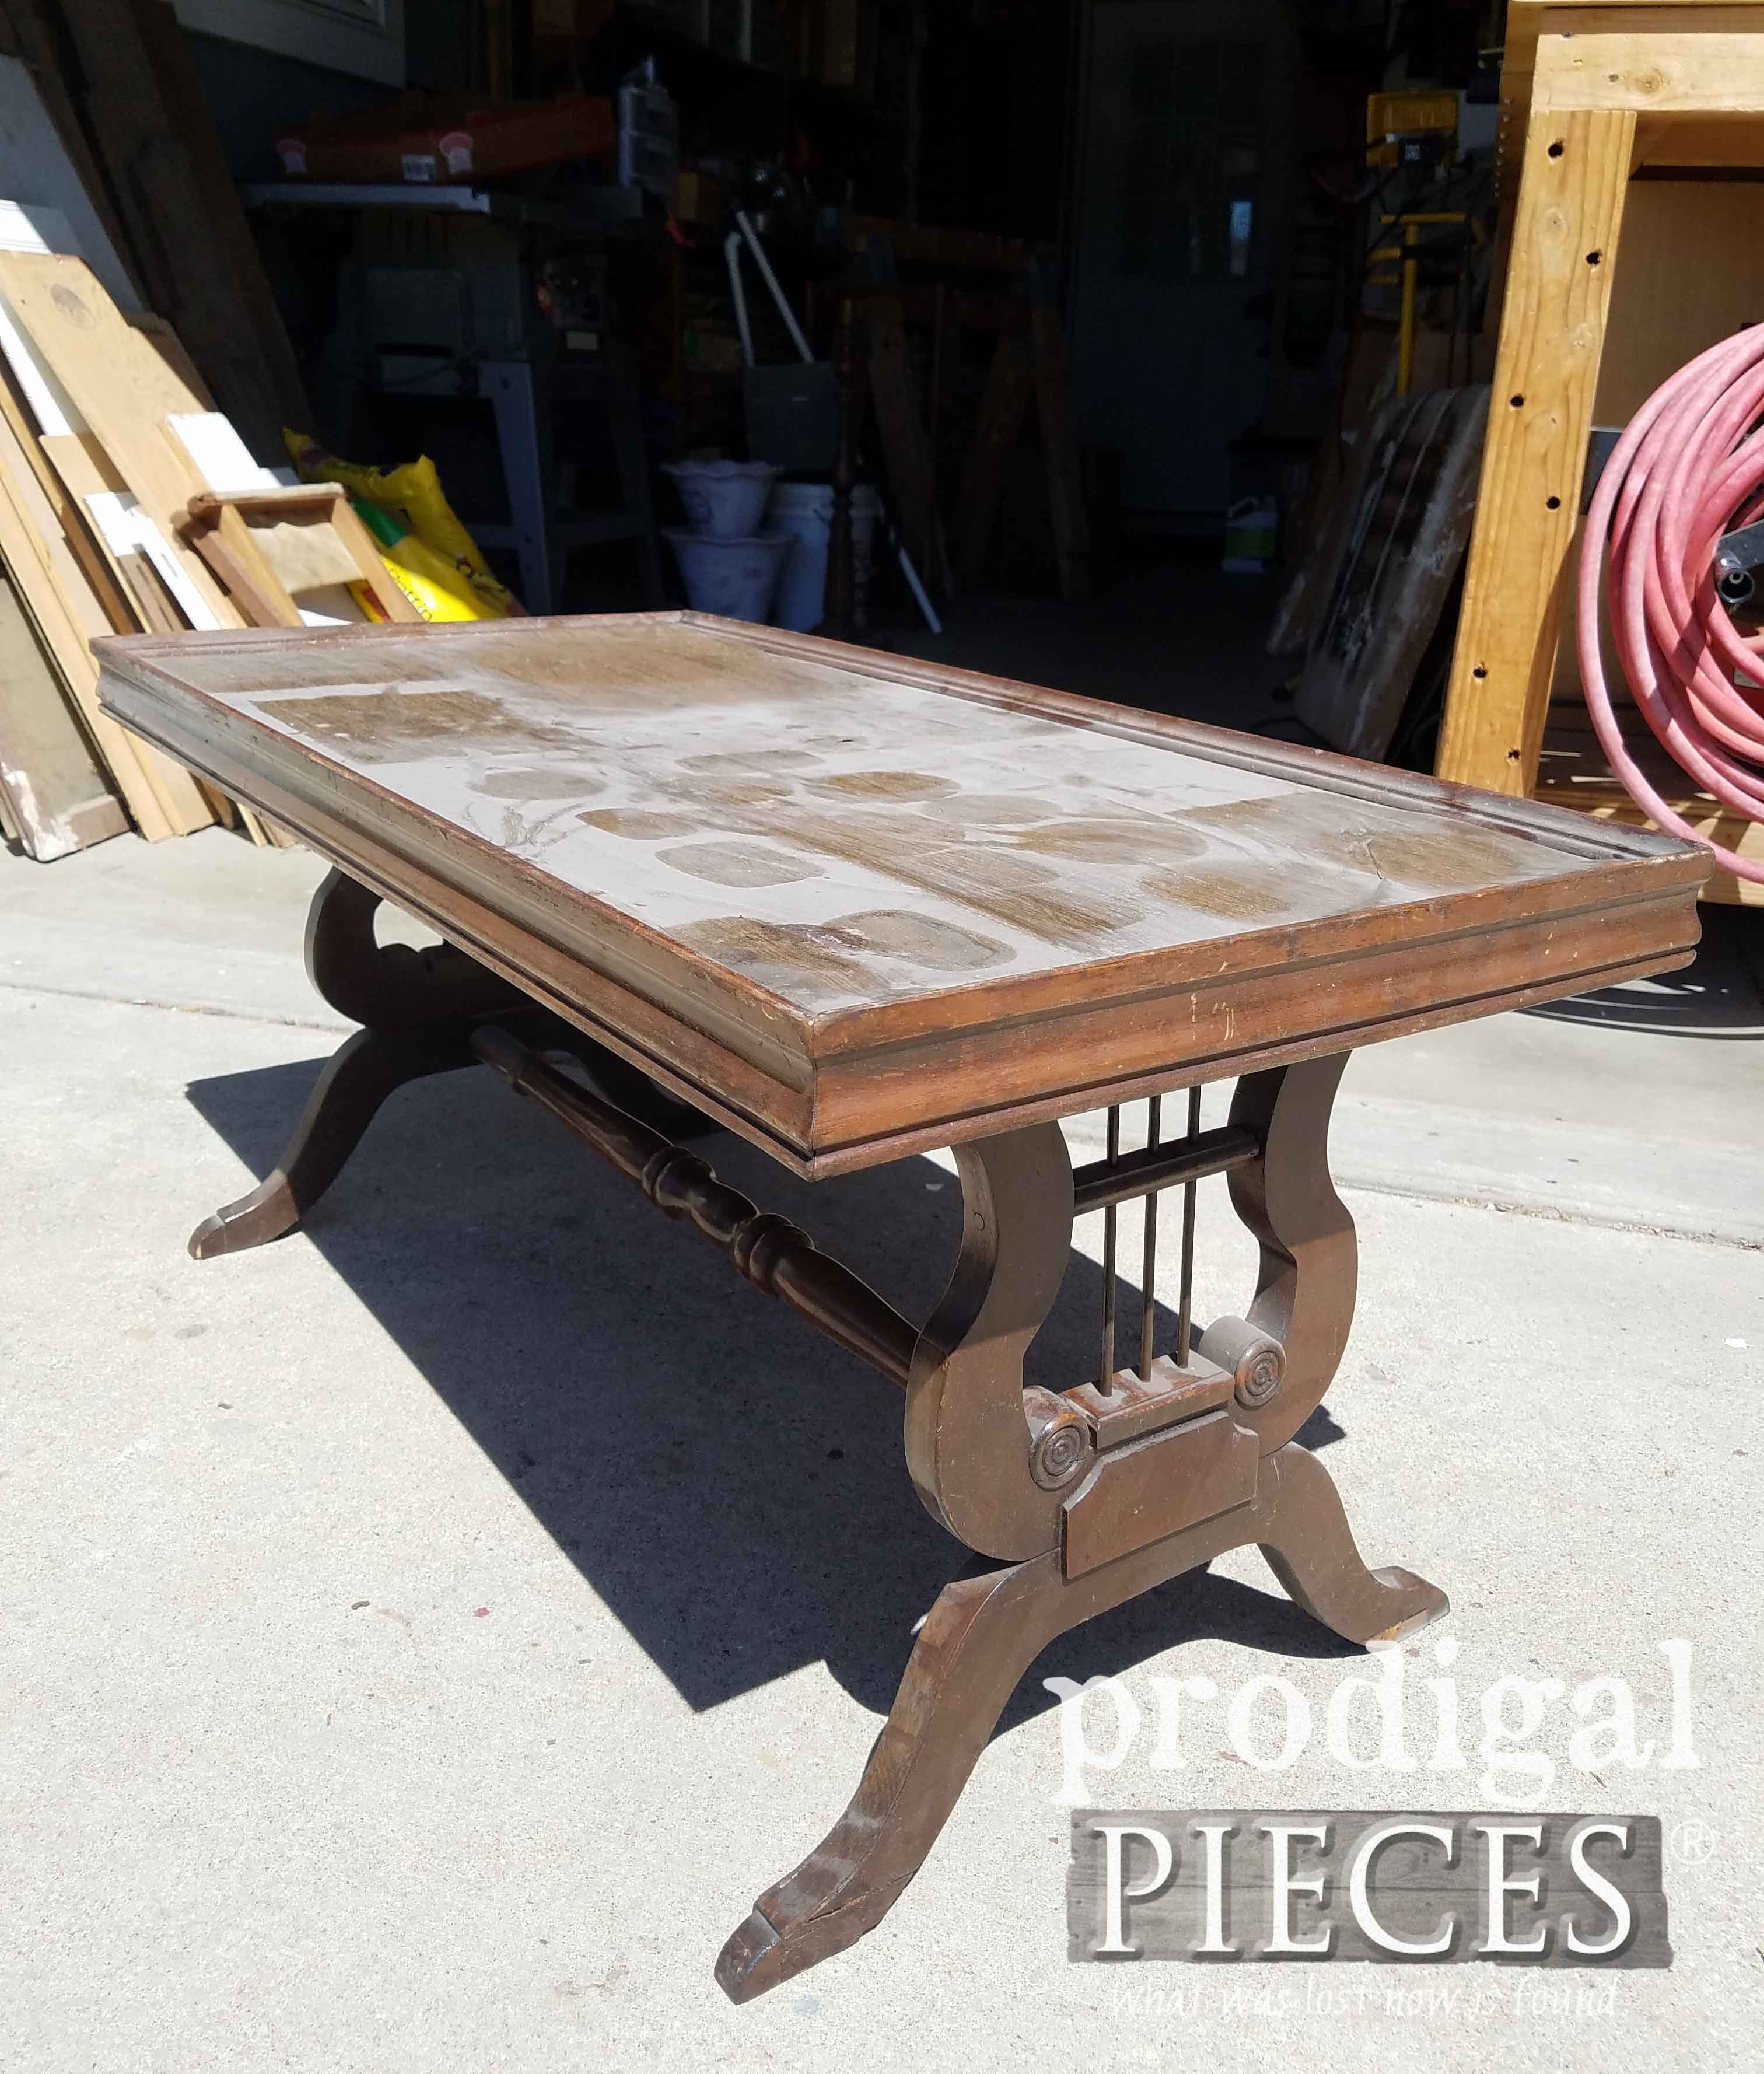 Antique Lyre Coffee Table Rescued & Restored - Prodigal Pieces regarding Lyre Coffee Tables (Image 3 of 30)